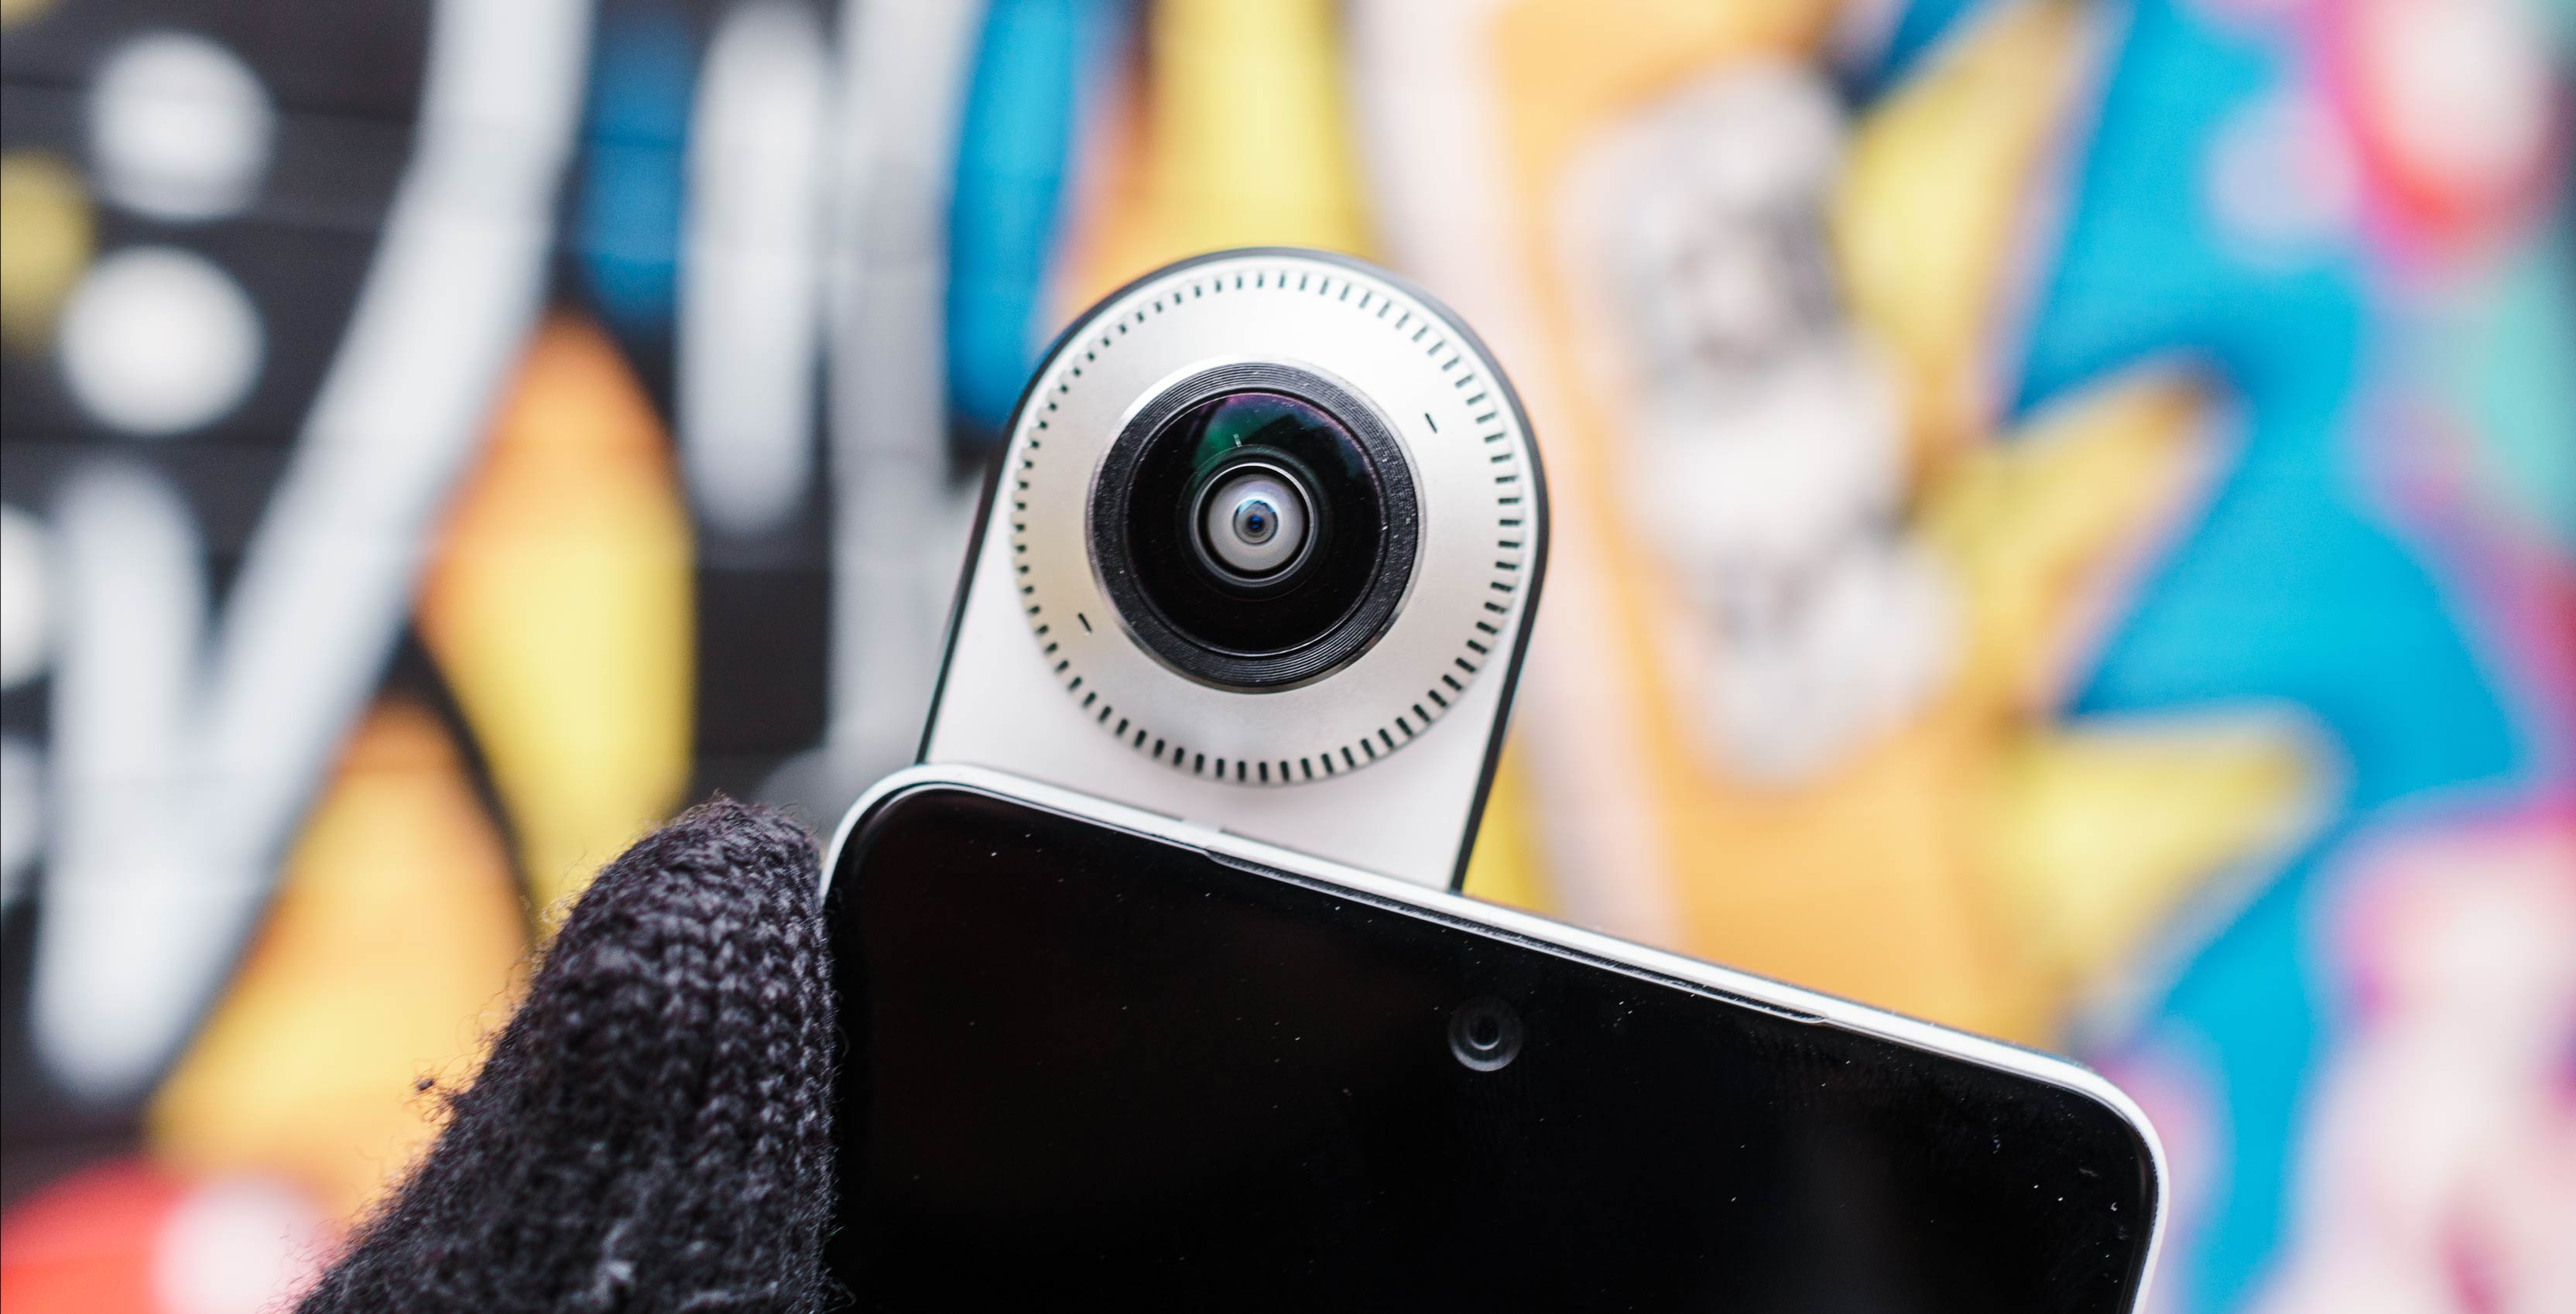 Essential Phone and Essential 360 Camera